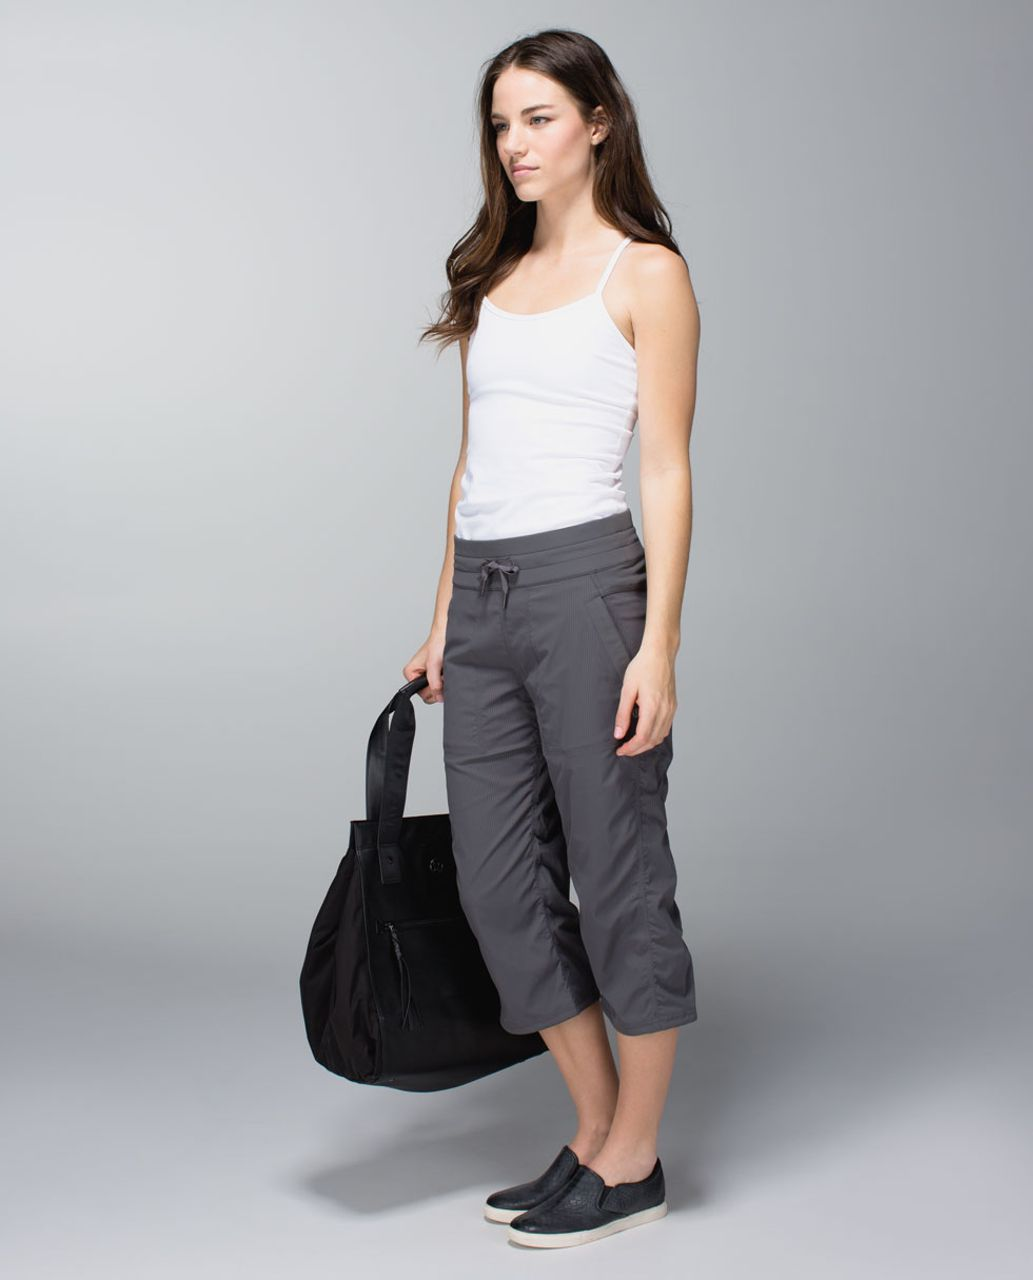 Lululemon Studio Crop *No Liner - Soot Light